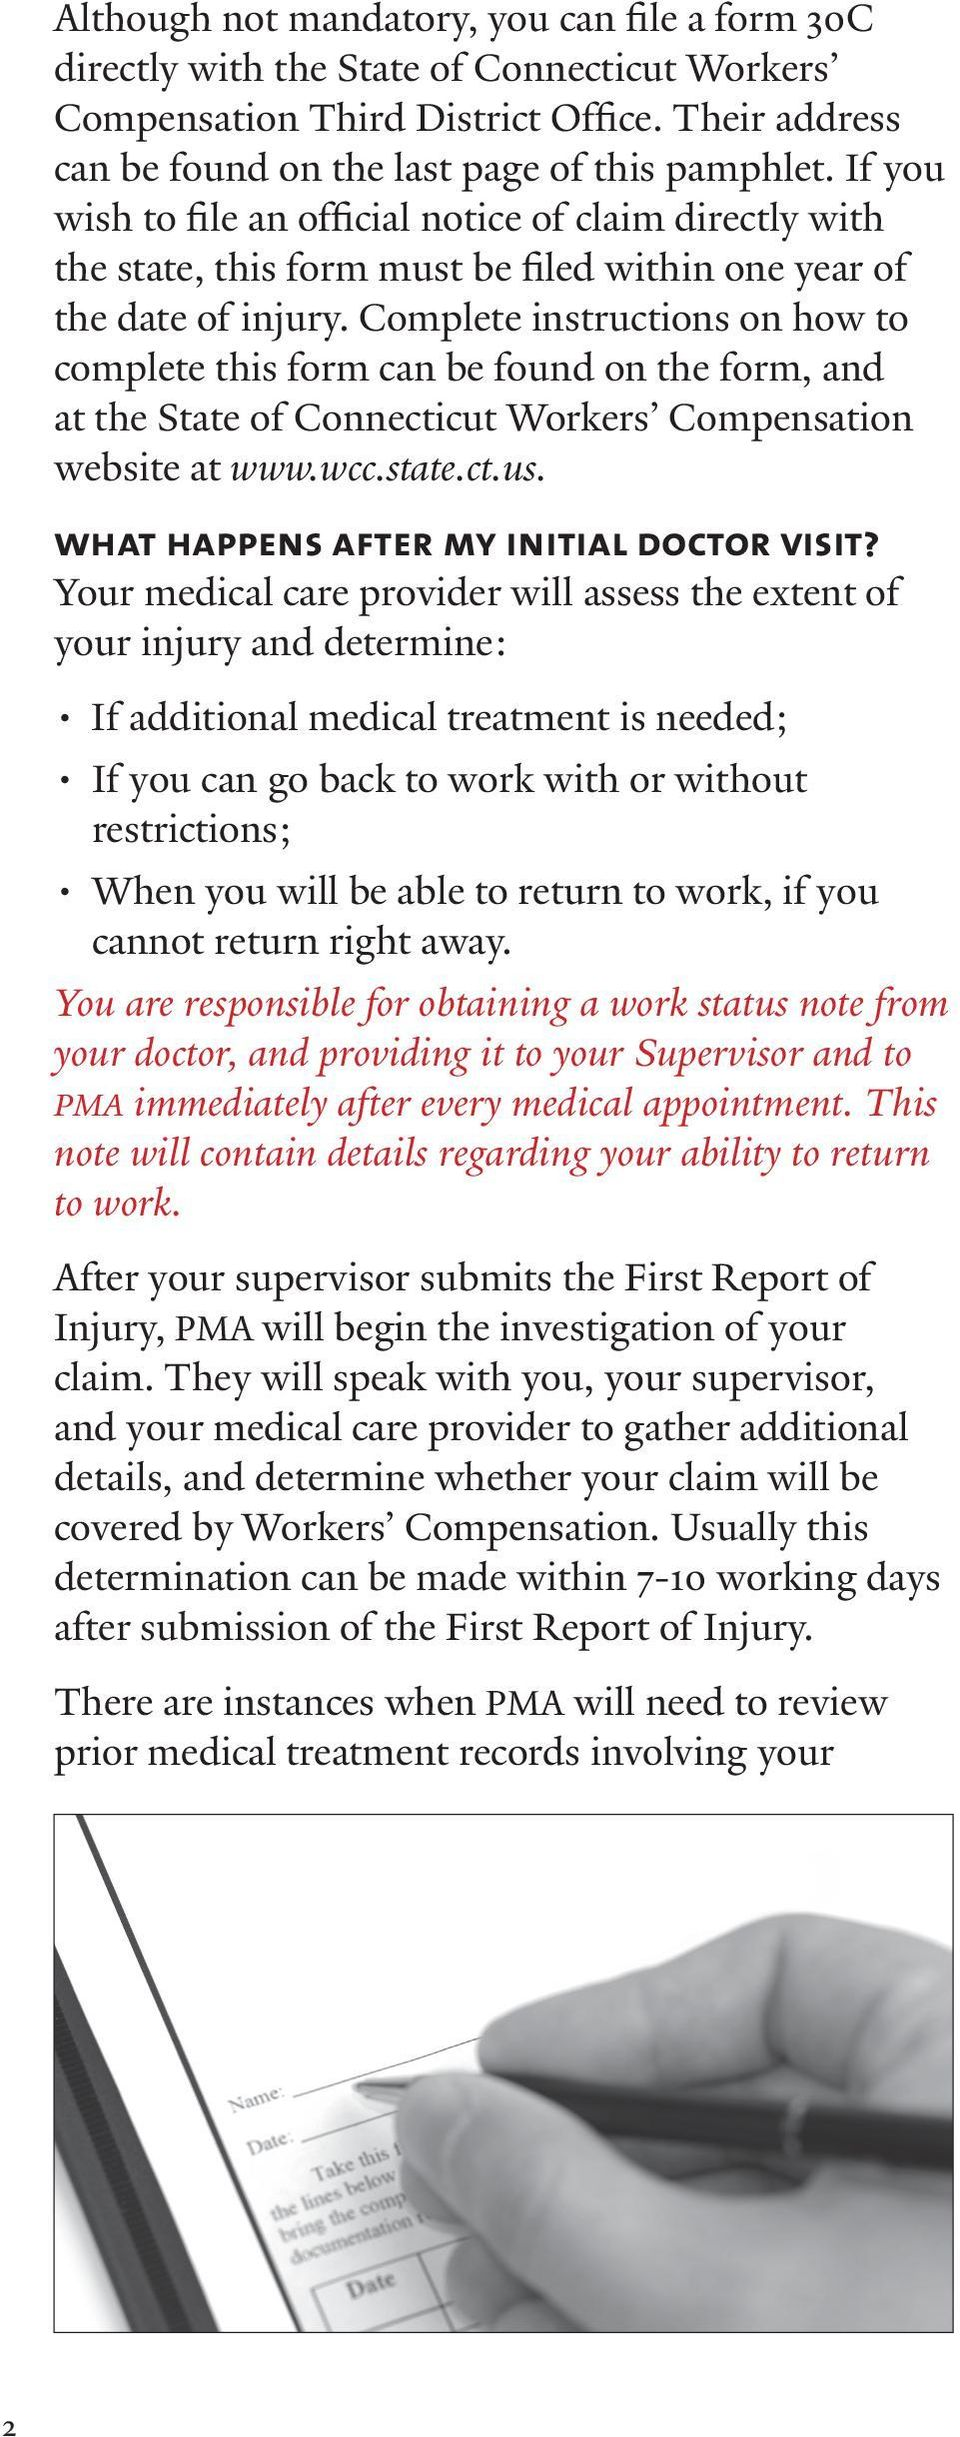 Complete instructions on how to complete this form can be found on the form, and at the State of Connecticut Workers Compensation website at www.wcc.state.ct.us.